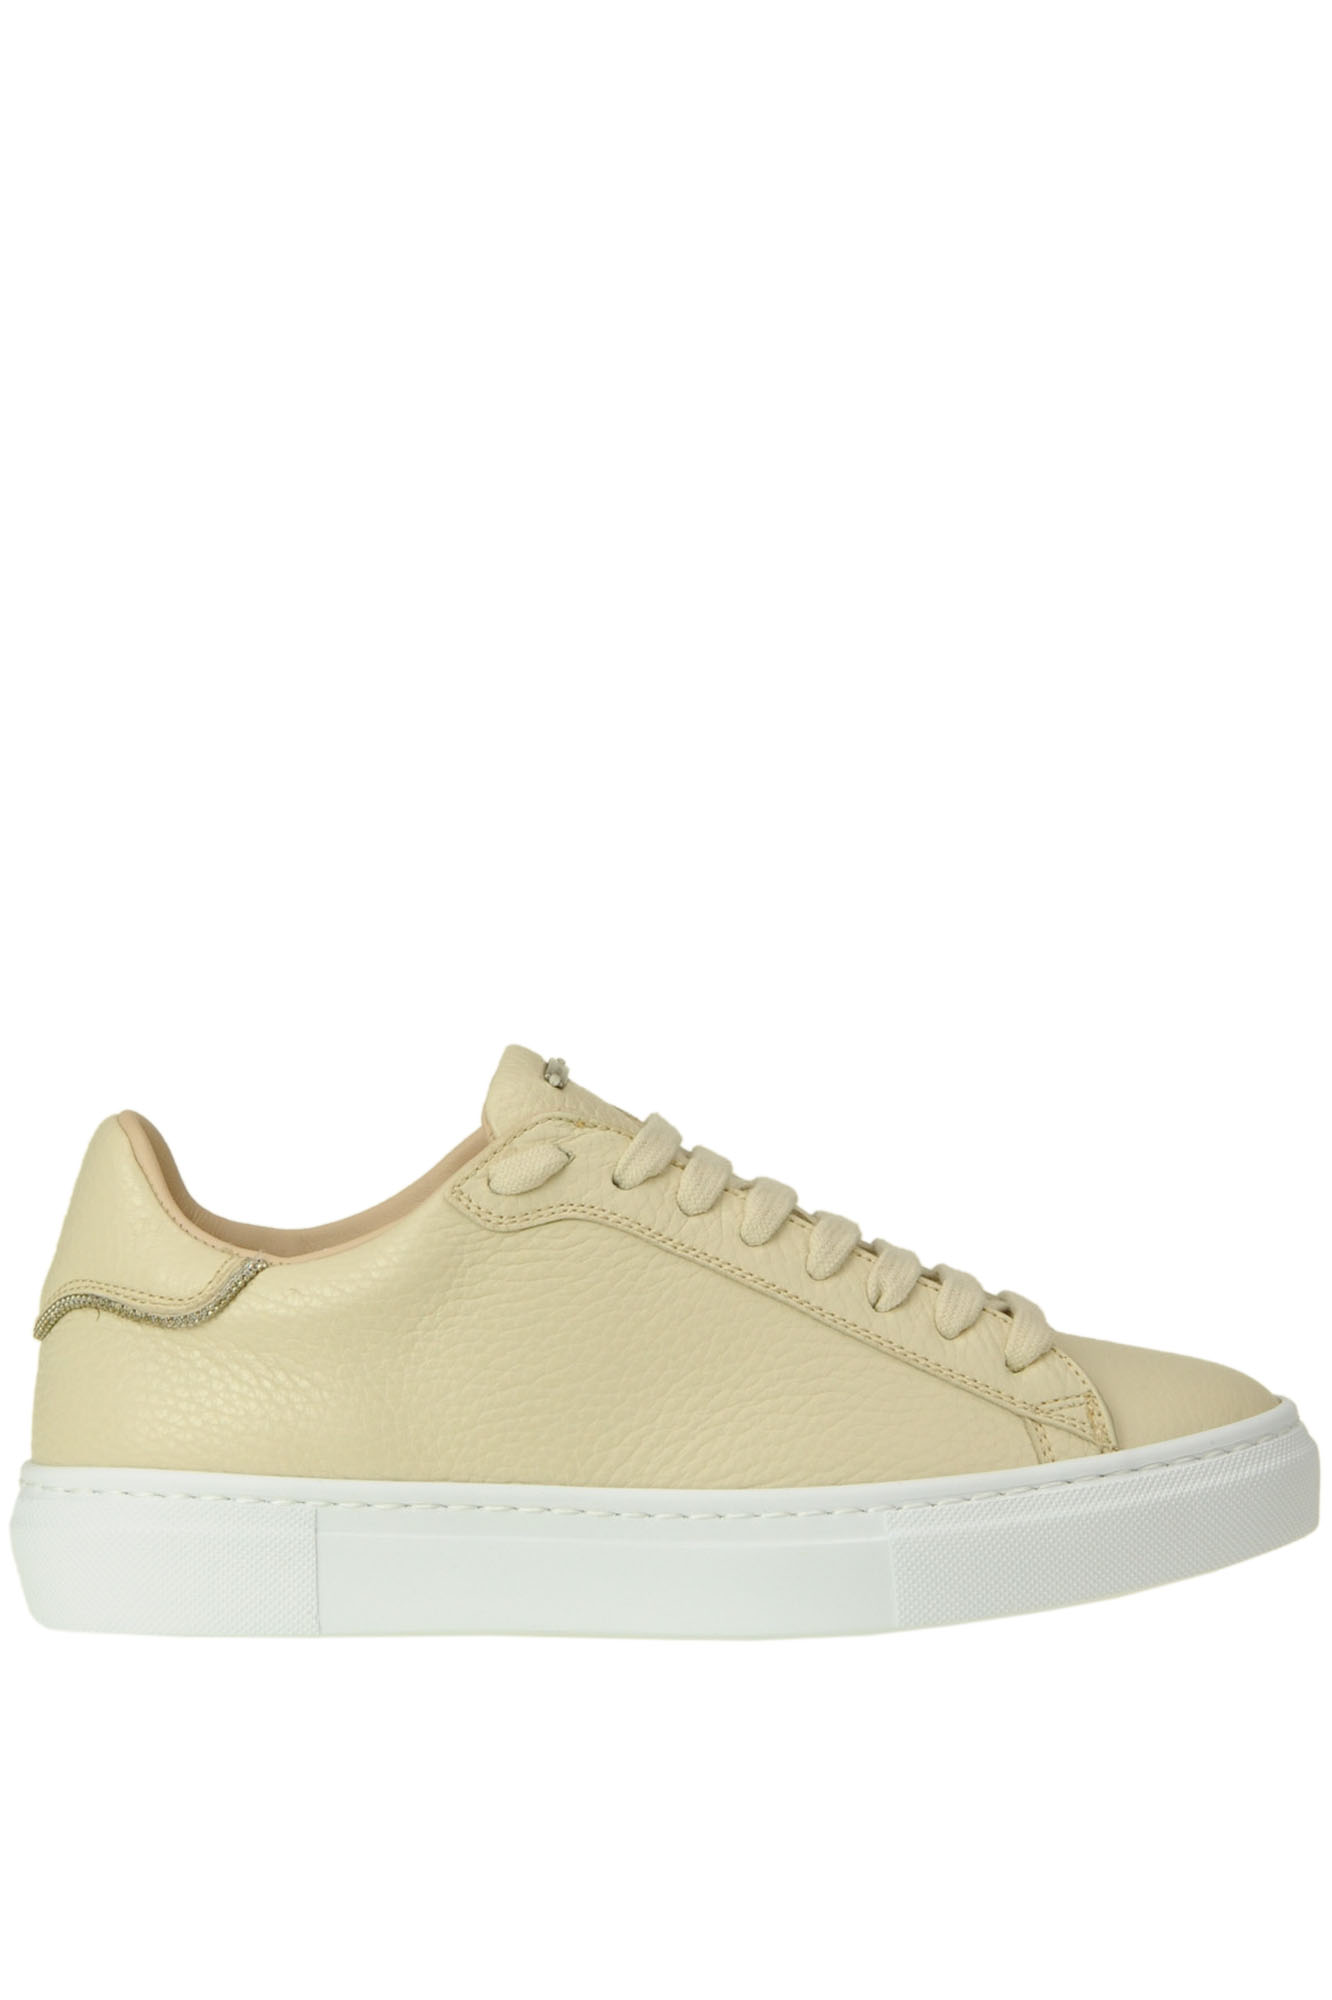 Fabiana Filippi GRAINY LEATHER SNEAKERS